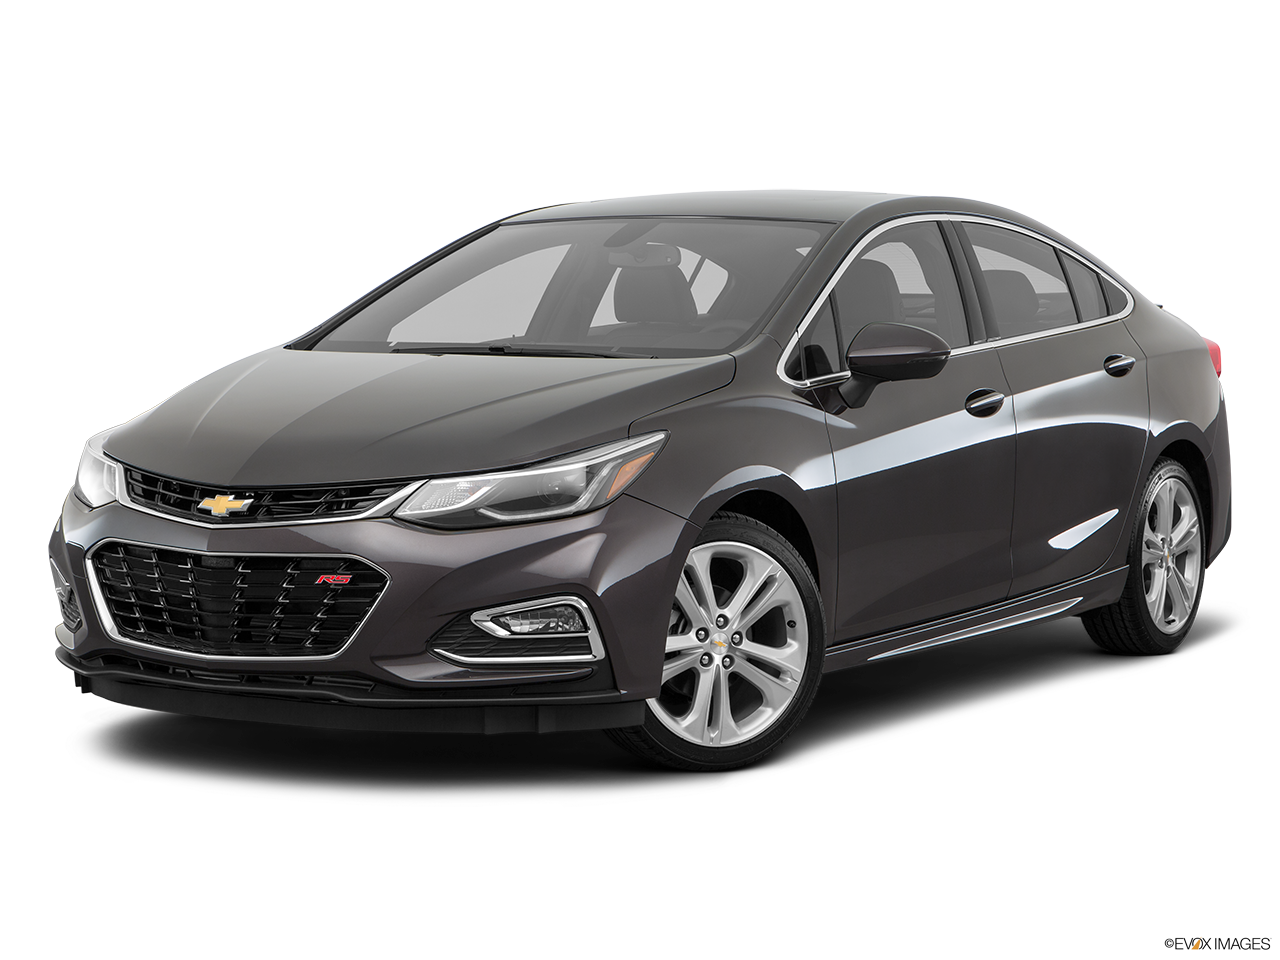 test drive a 2016 chevrolet cruze at champion chevrolet in reno. Cars Review. Best American Auto & Cars Review